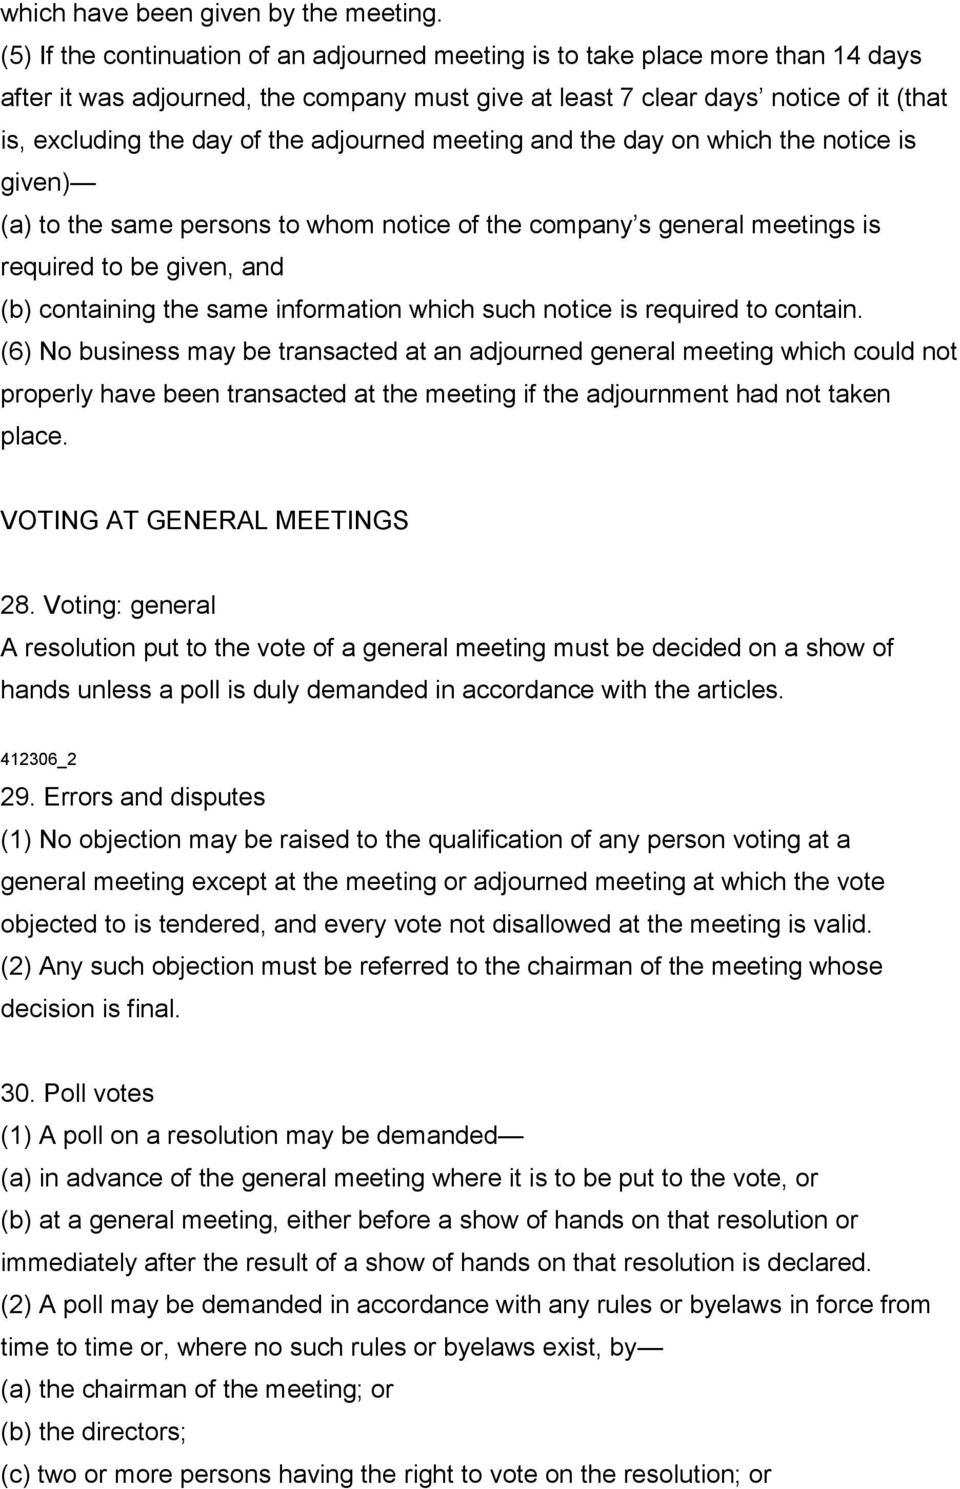 adjourned meeting and the day on which the notice is given) (a) to the same persons to whom notice of the company s general meetings is required to be given, and (b) containing the same information